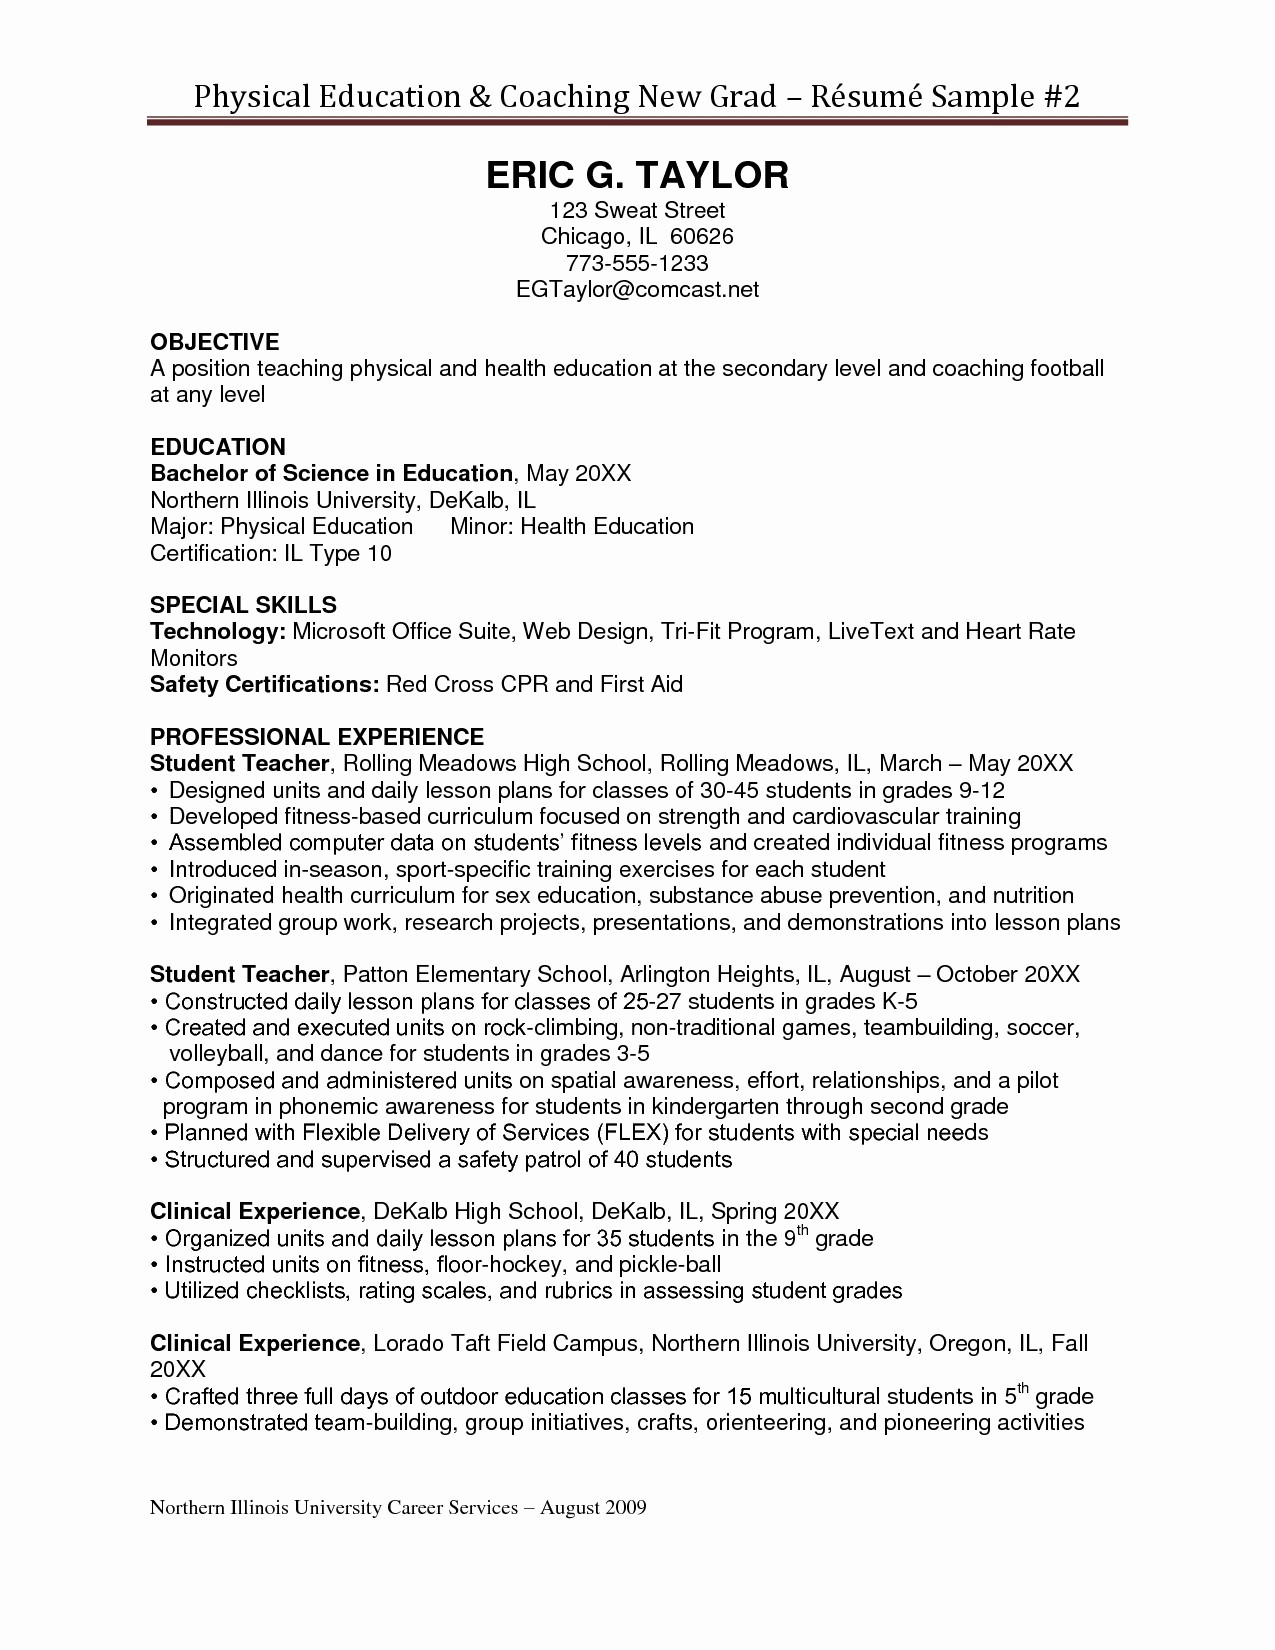 soccer coach resume template example-Hockey Resume Template Save Soccer Coach Resume Sample New Coaching Resume Samples Download 10-i